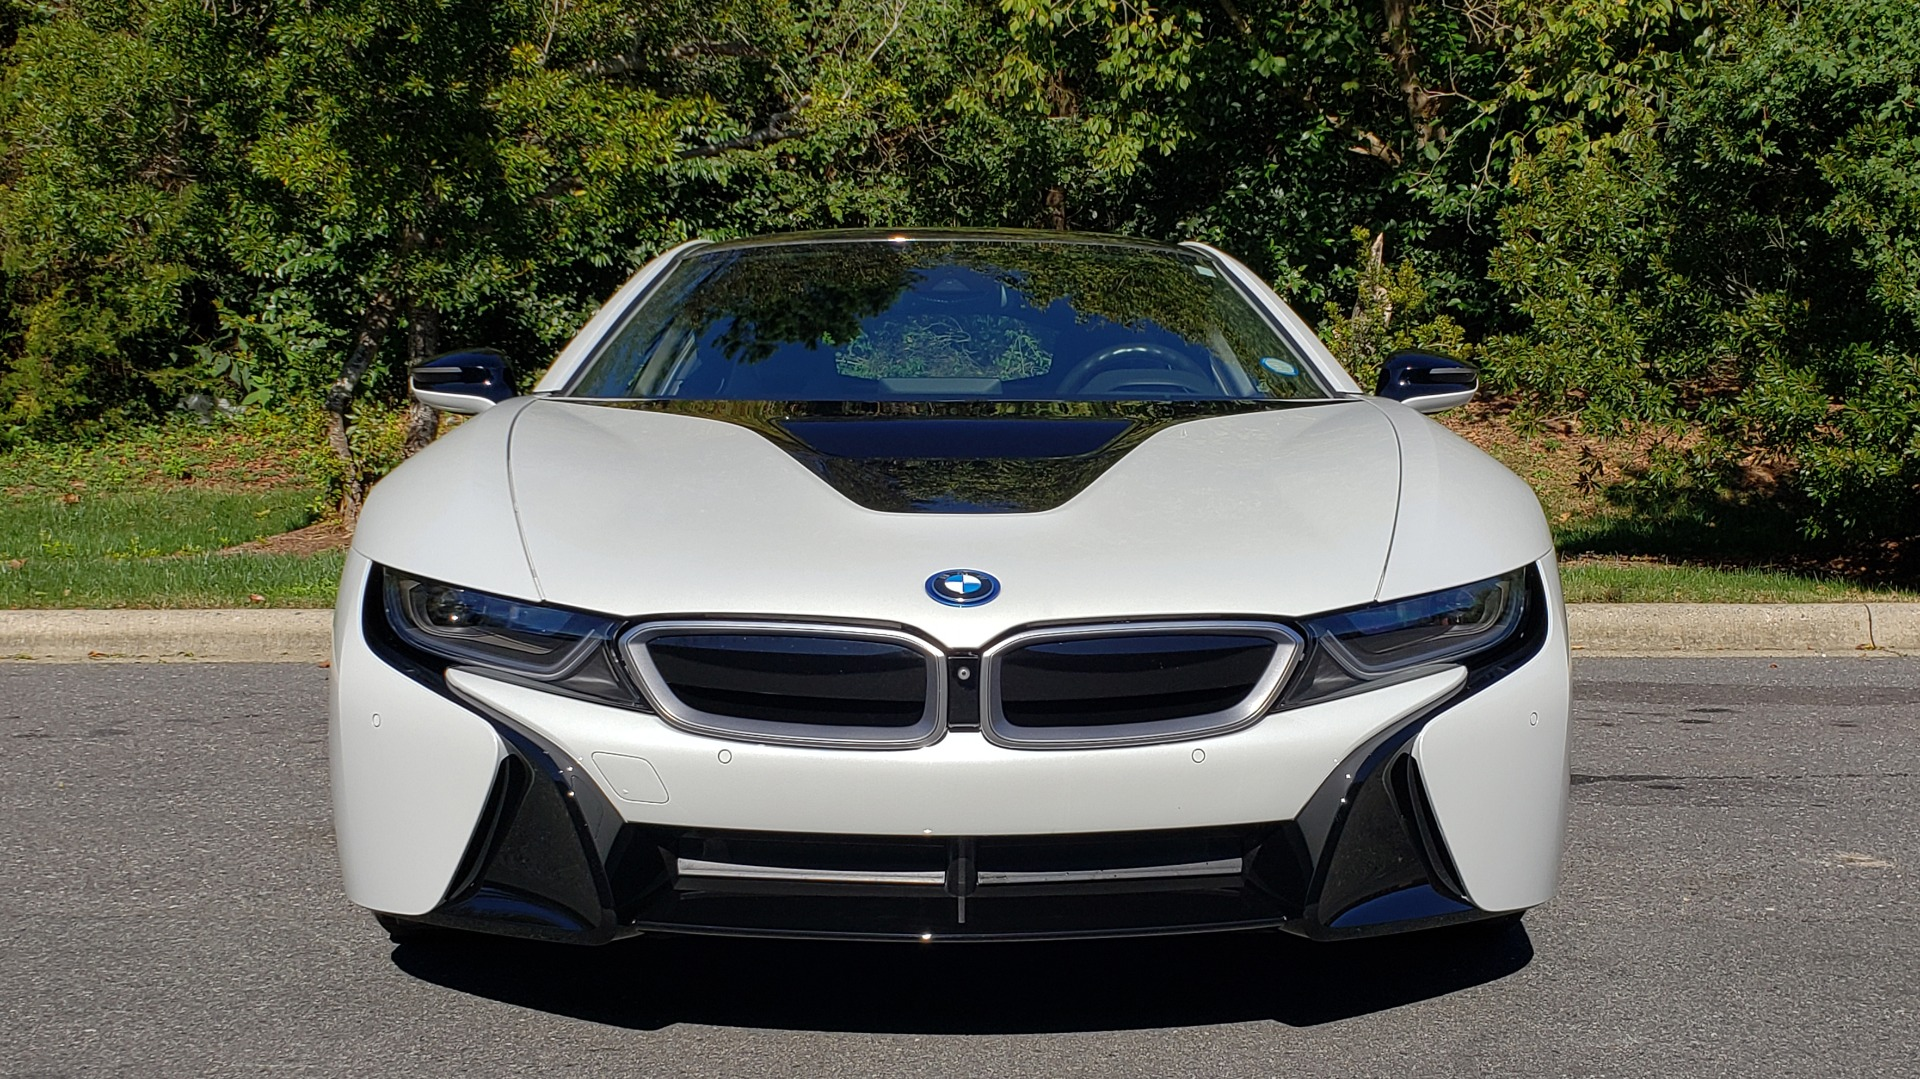 Used 2014 BMW i8 COUPE / TERA WORLD / NAV / CARBON FIBER ROOF / REARVIEW for sale Sold at Formula Imports in Charlotte NC 28227 12